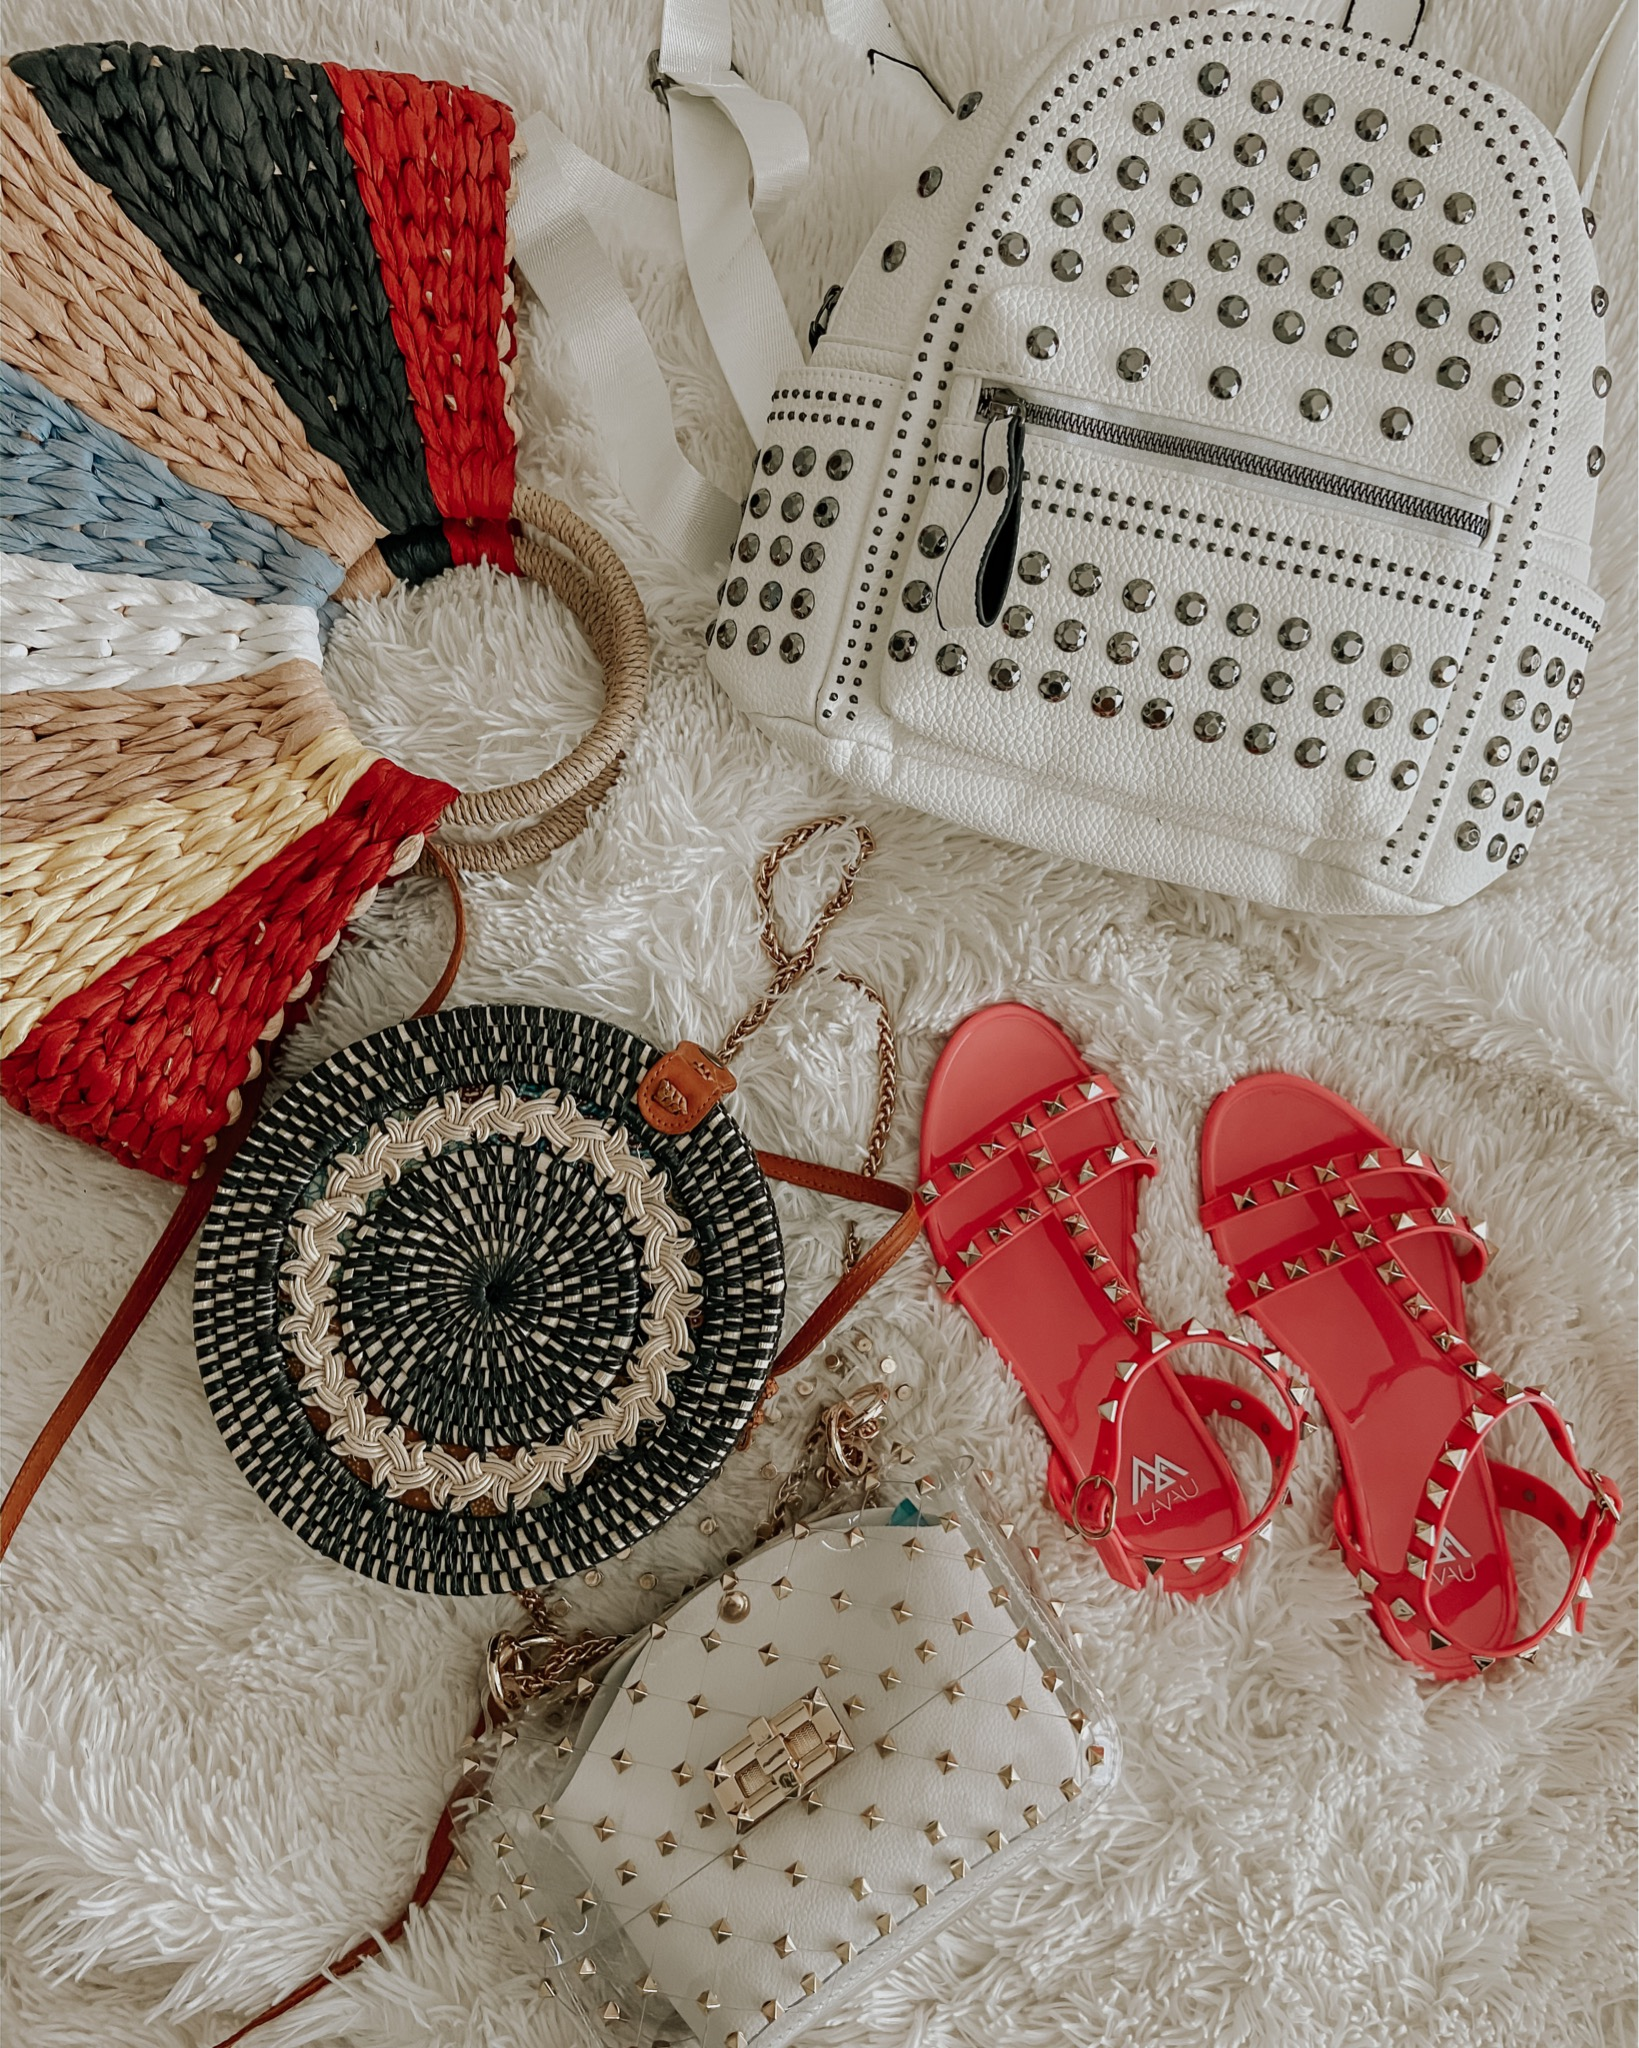 AMAZON ROUNDUP- MARCH 2020- Jaclyn De Leon Style + rounding up my Amazon finds for the month including cute sandals, swimsuits + kimonos, spring dresses and more